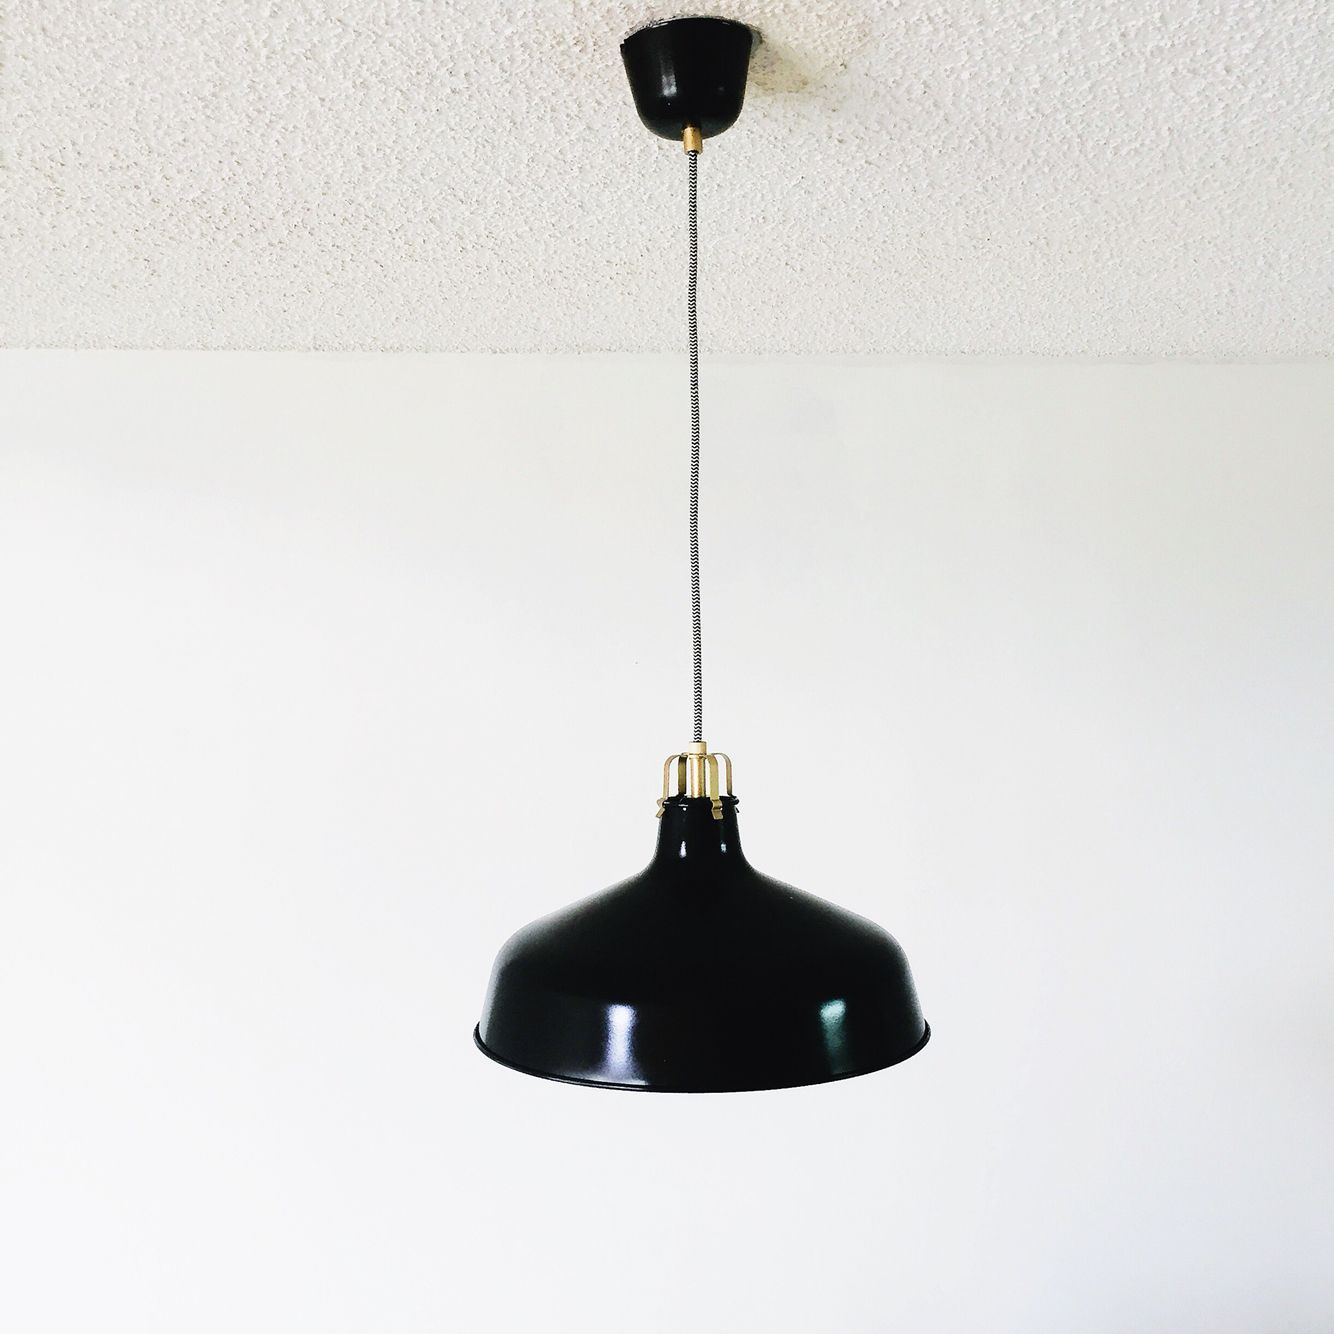 Ikea Light Pendant Ranarp Ikea Ceiling Pendant Light Spray Painted Black